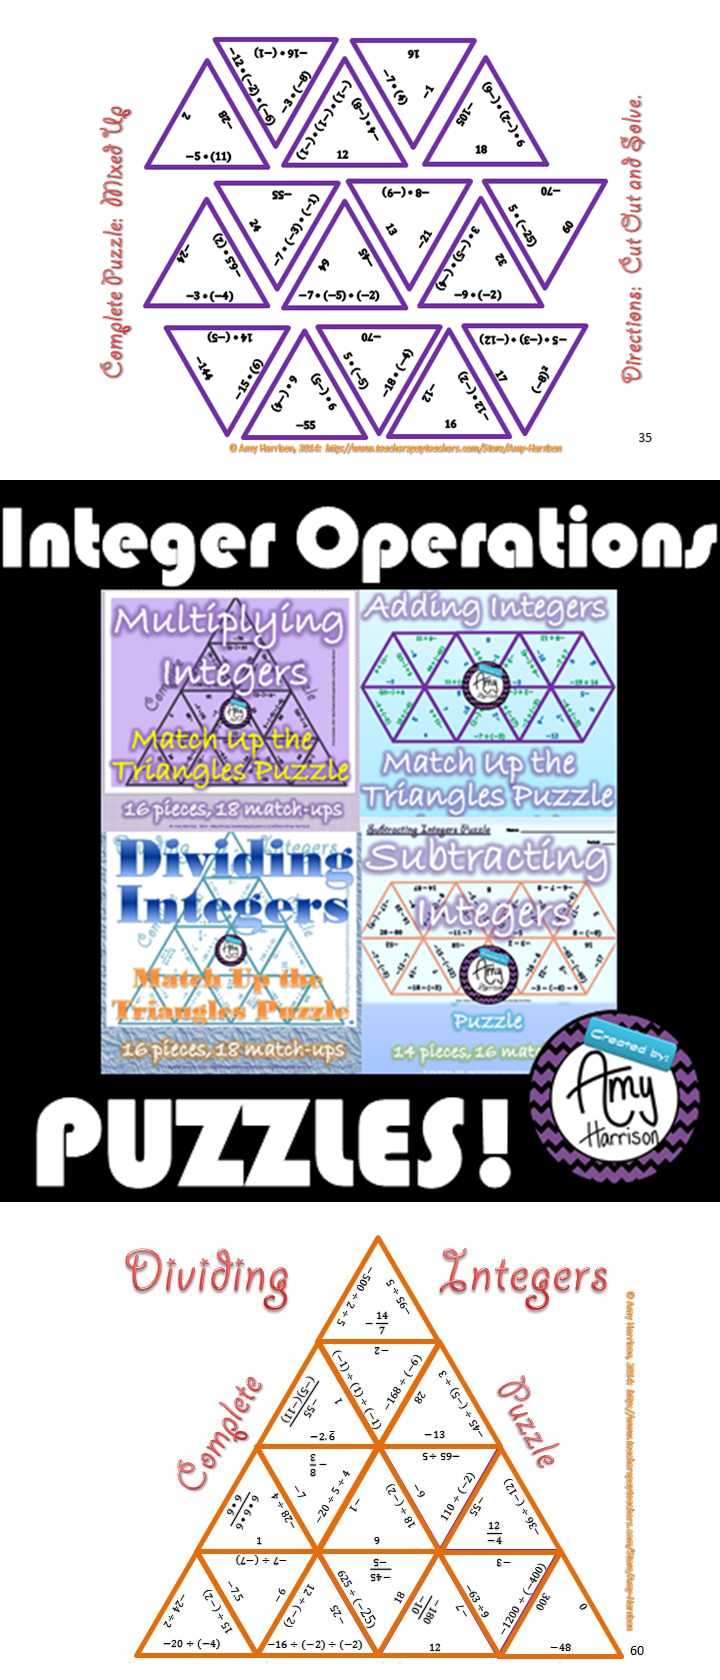 Integer Operations Puzzles Integers, Maths puzzles, Math